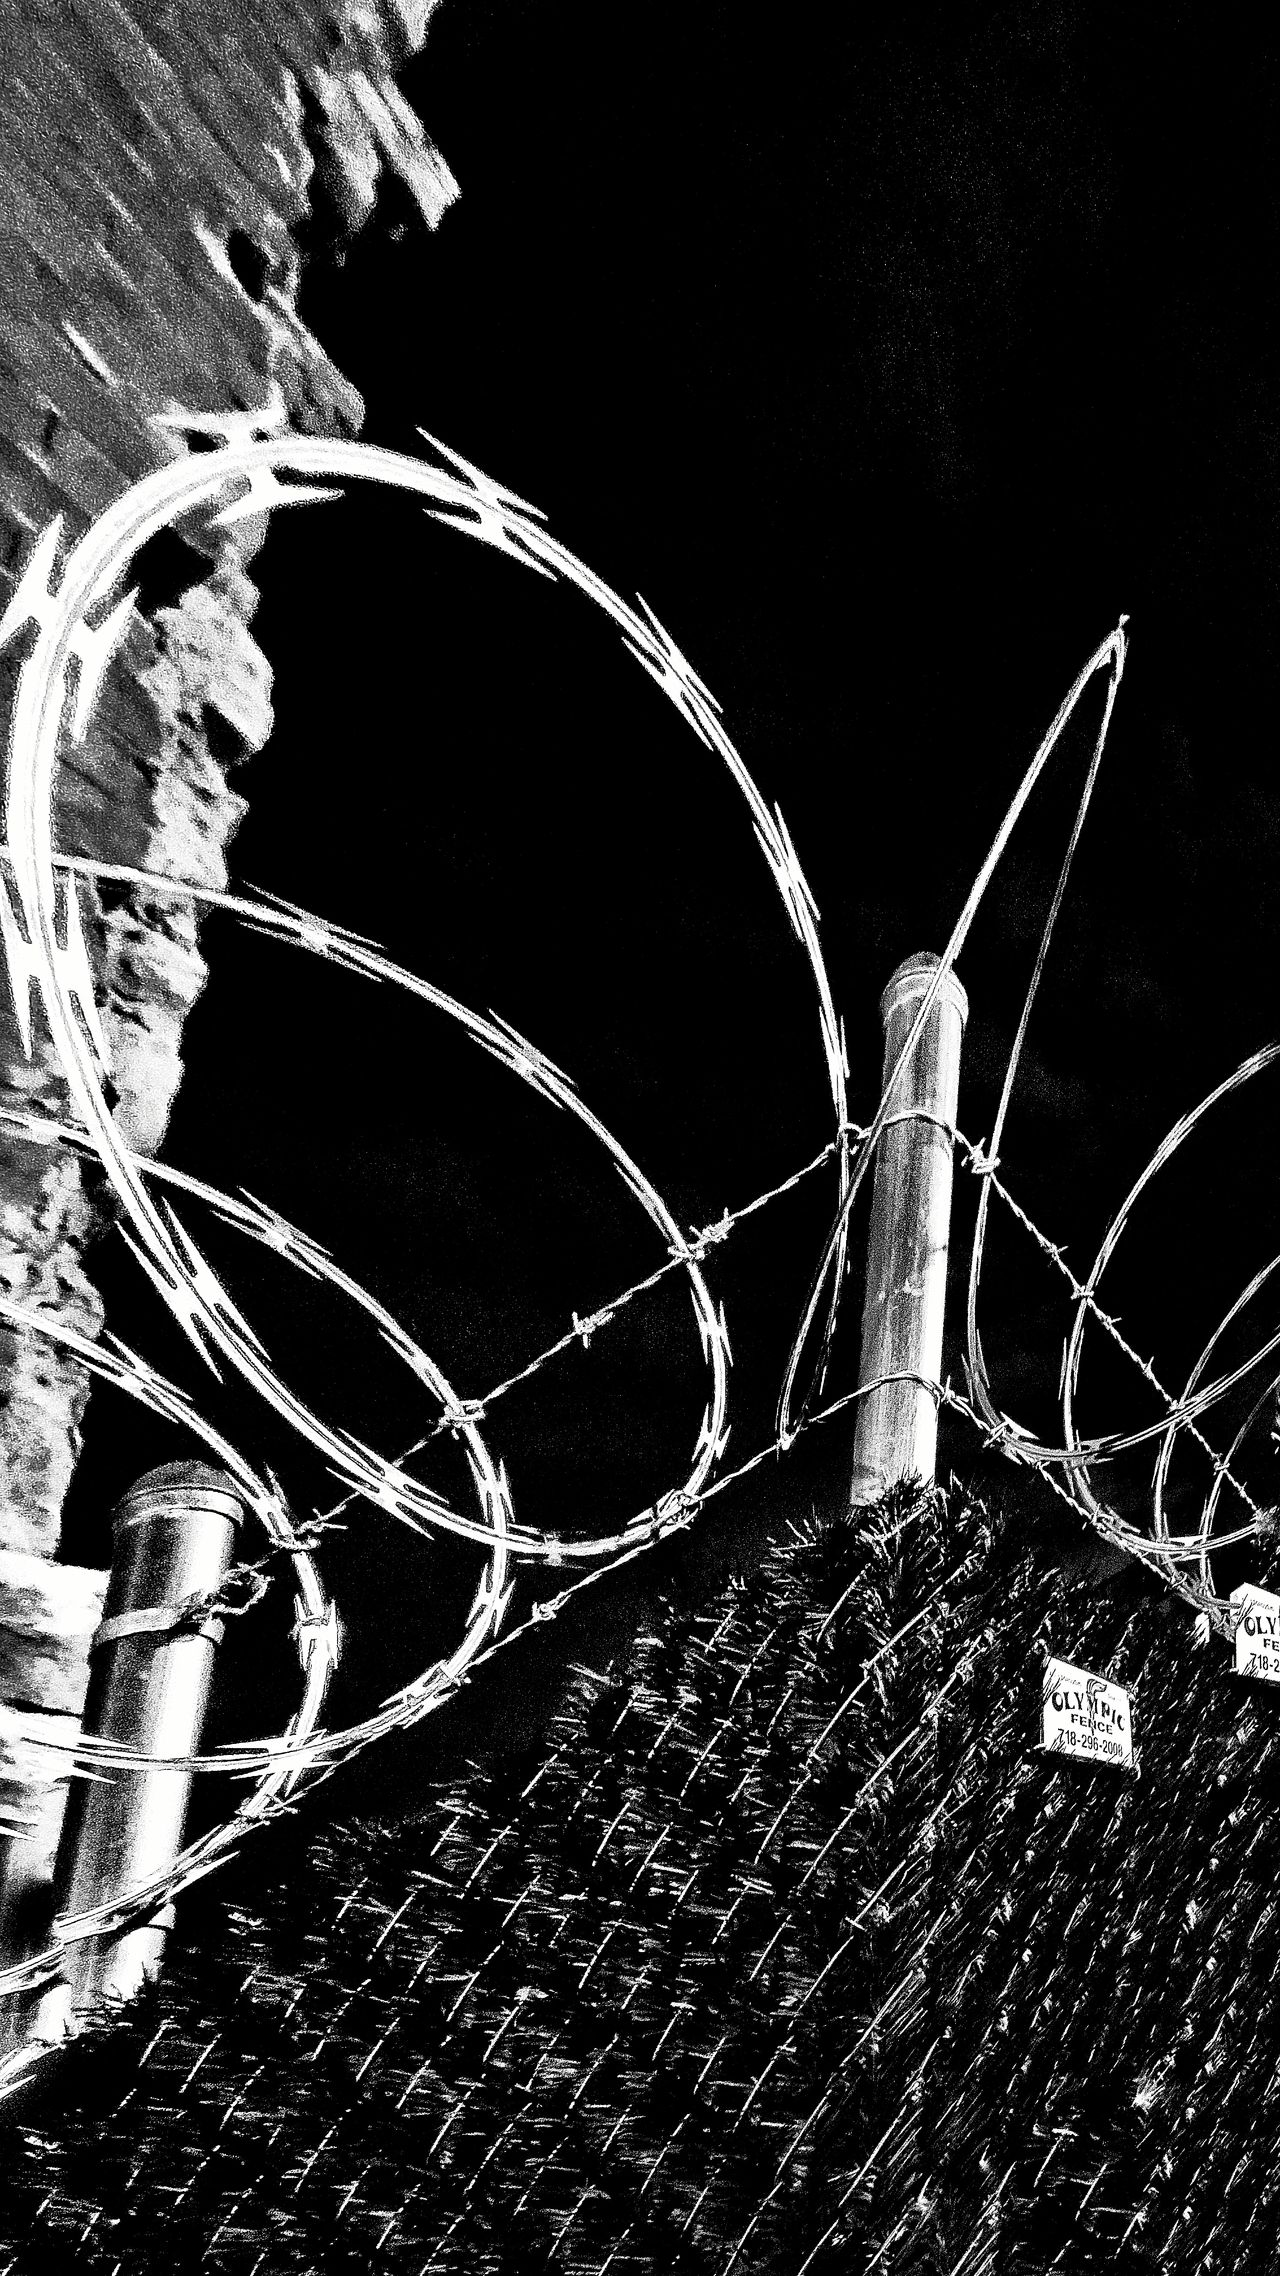 Razor Wire Fence Outdoors No People notDay Backgrounds Close-up